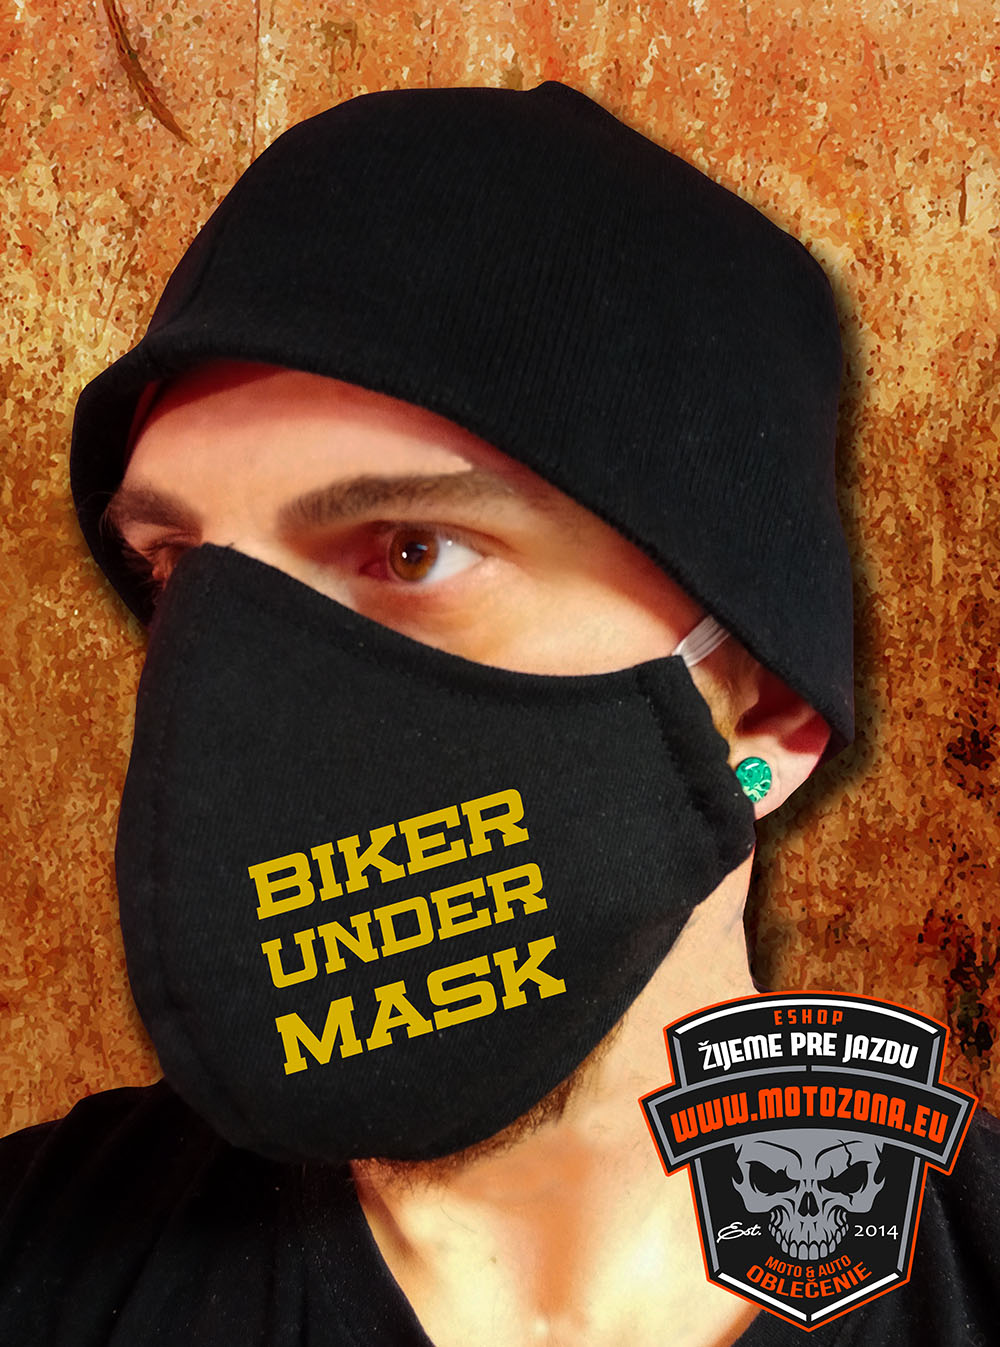 Rúško na tvár Biker under Mask